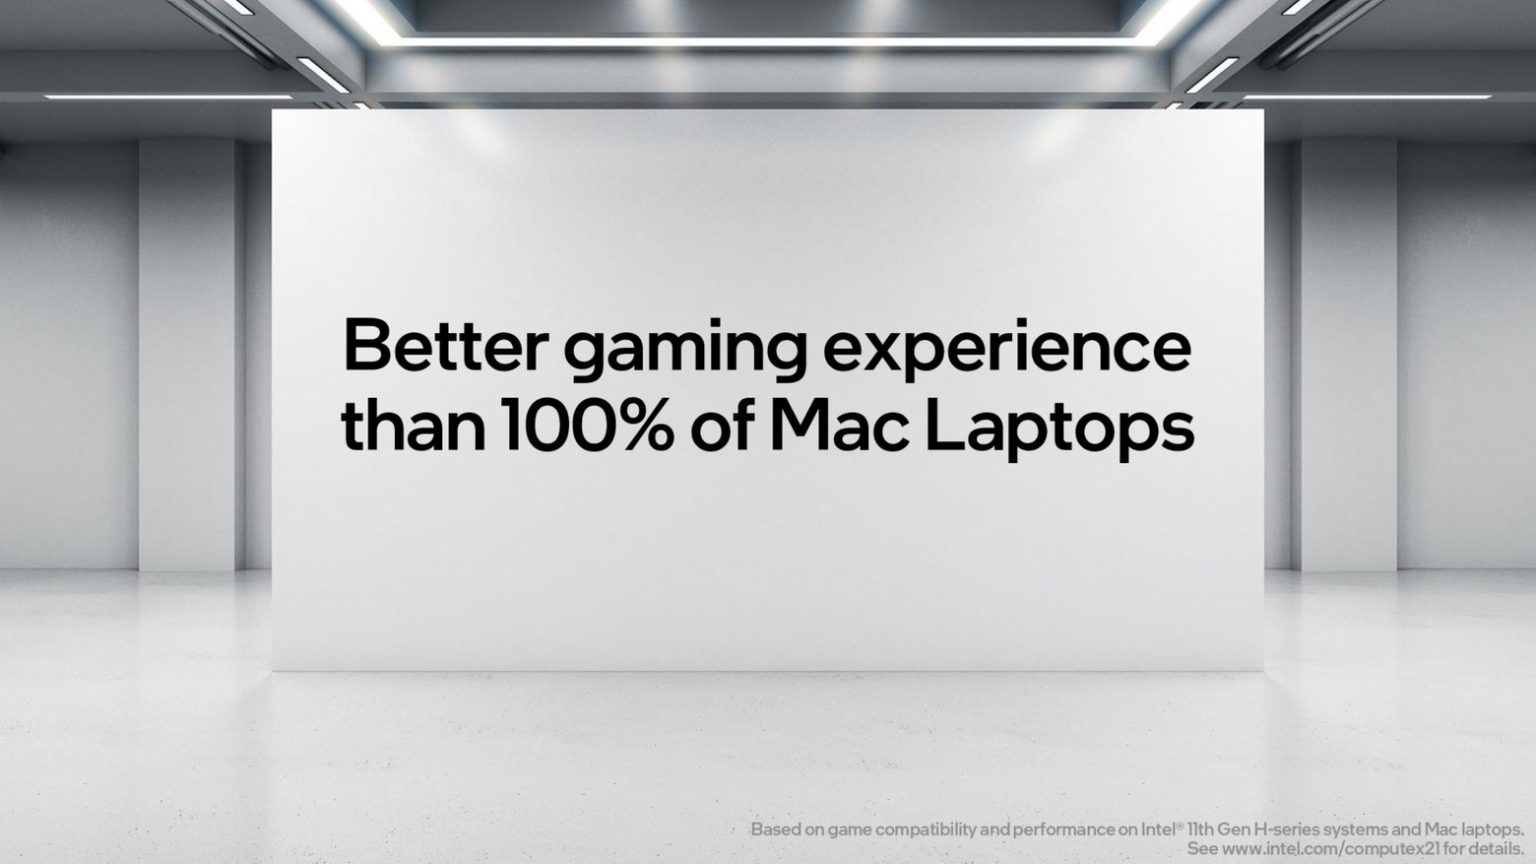 Intel urges Mac gamers to switch to Windows